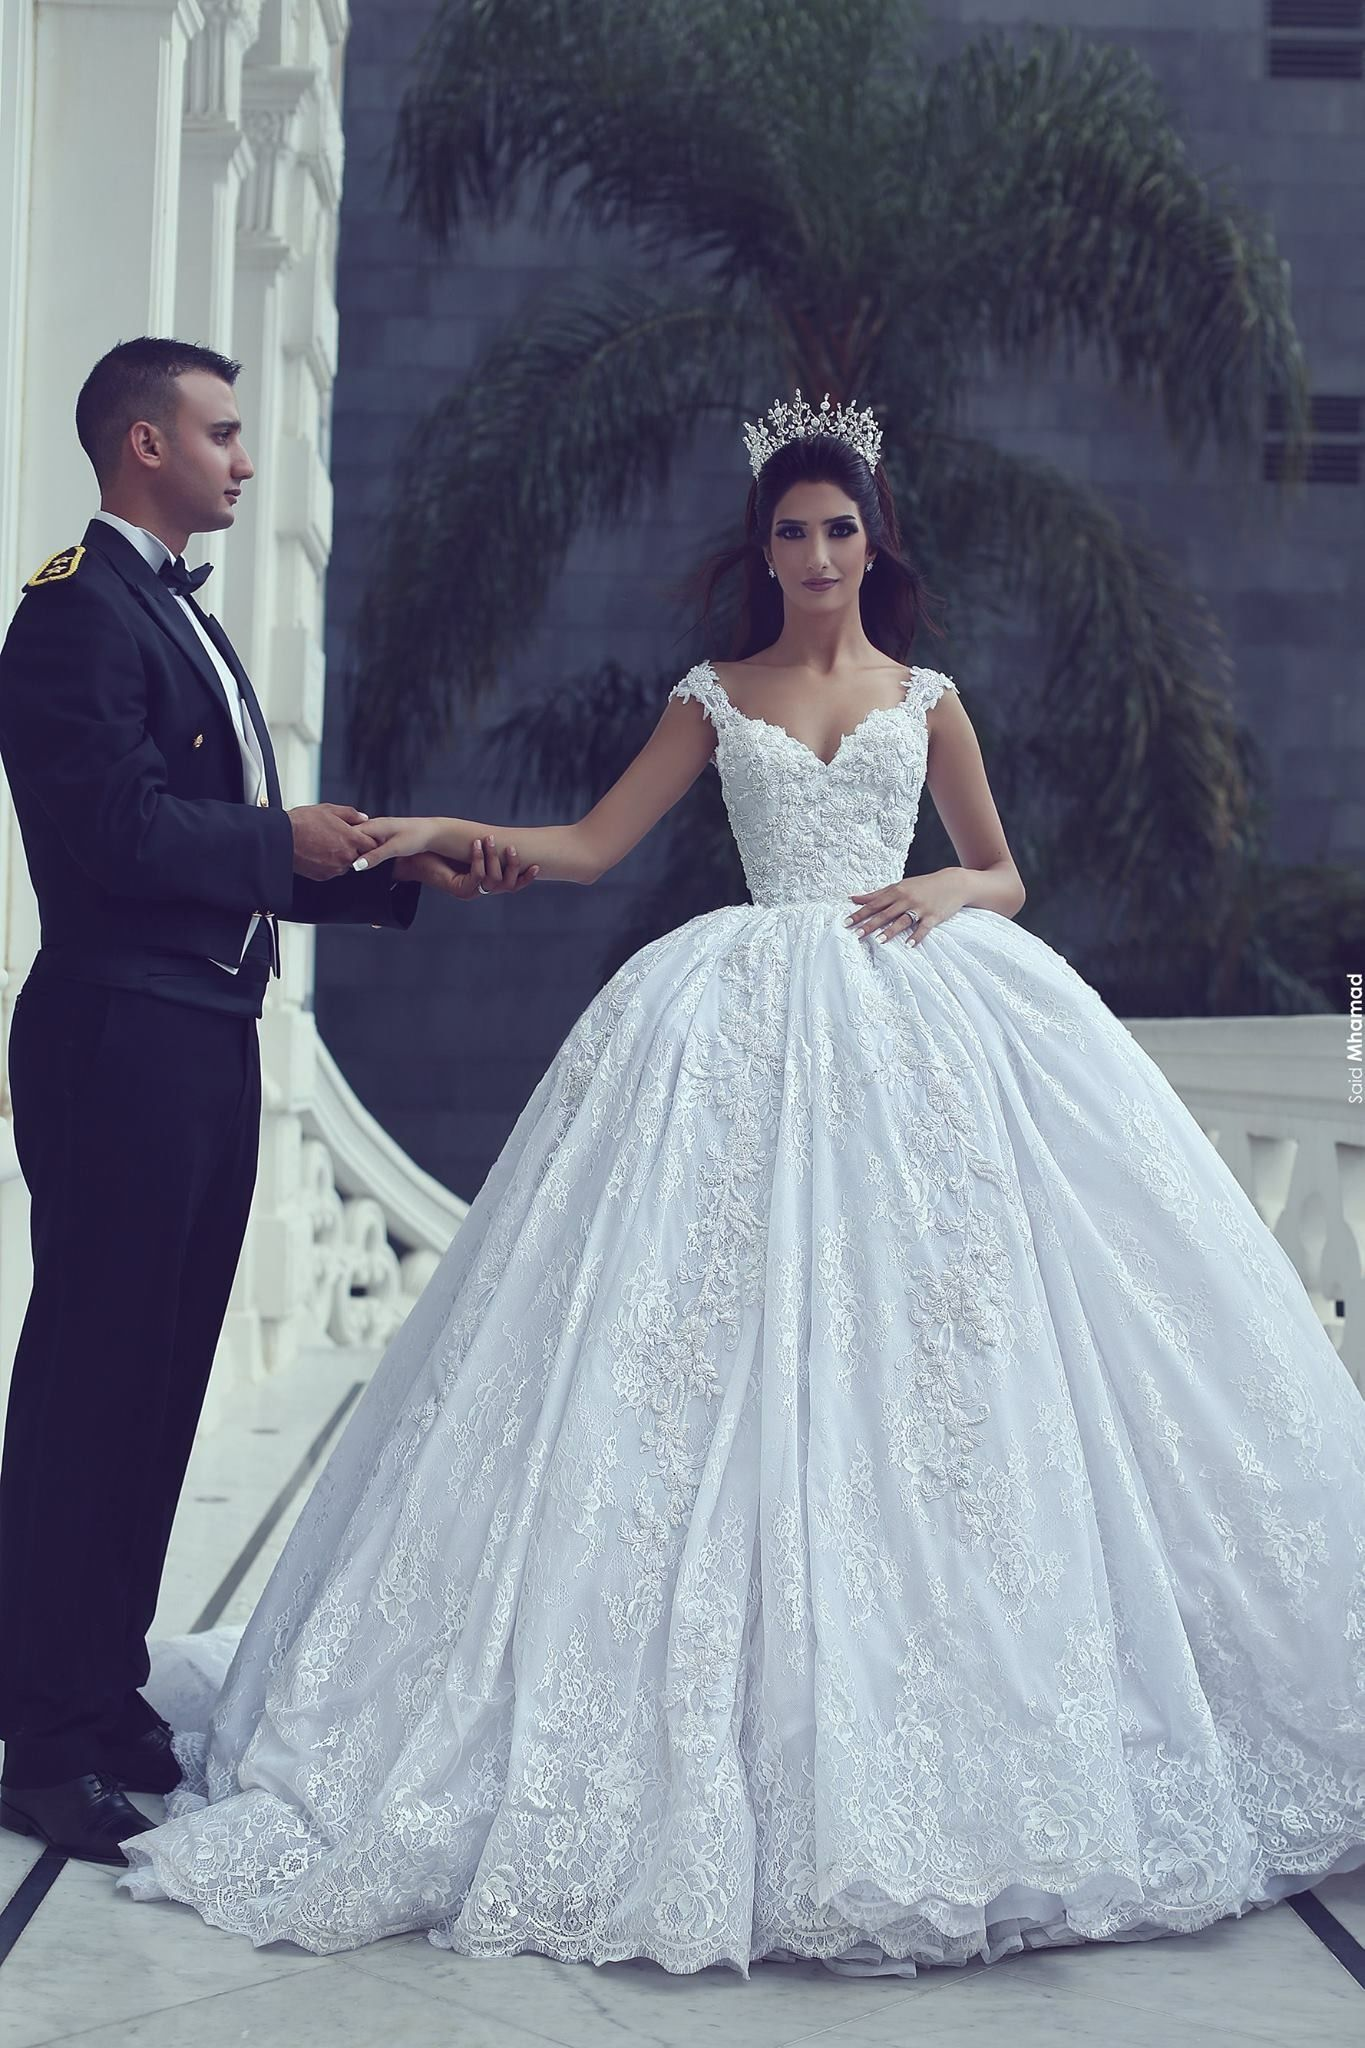 To look like a queen on my wedding day is my dream | Gelinlik ...